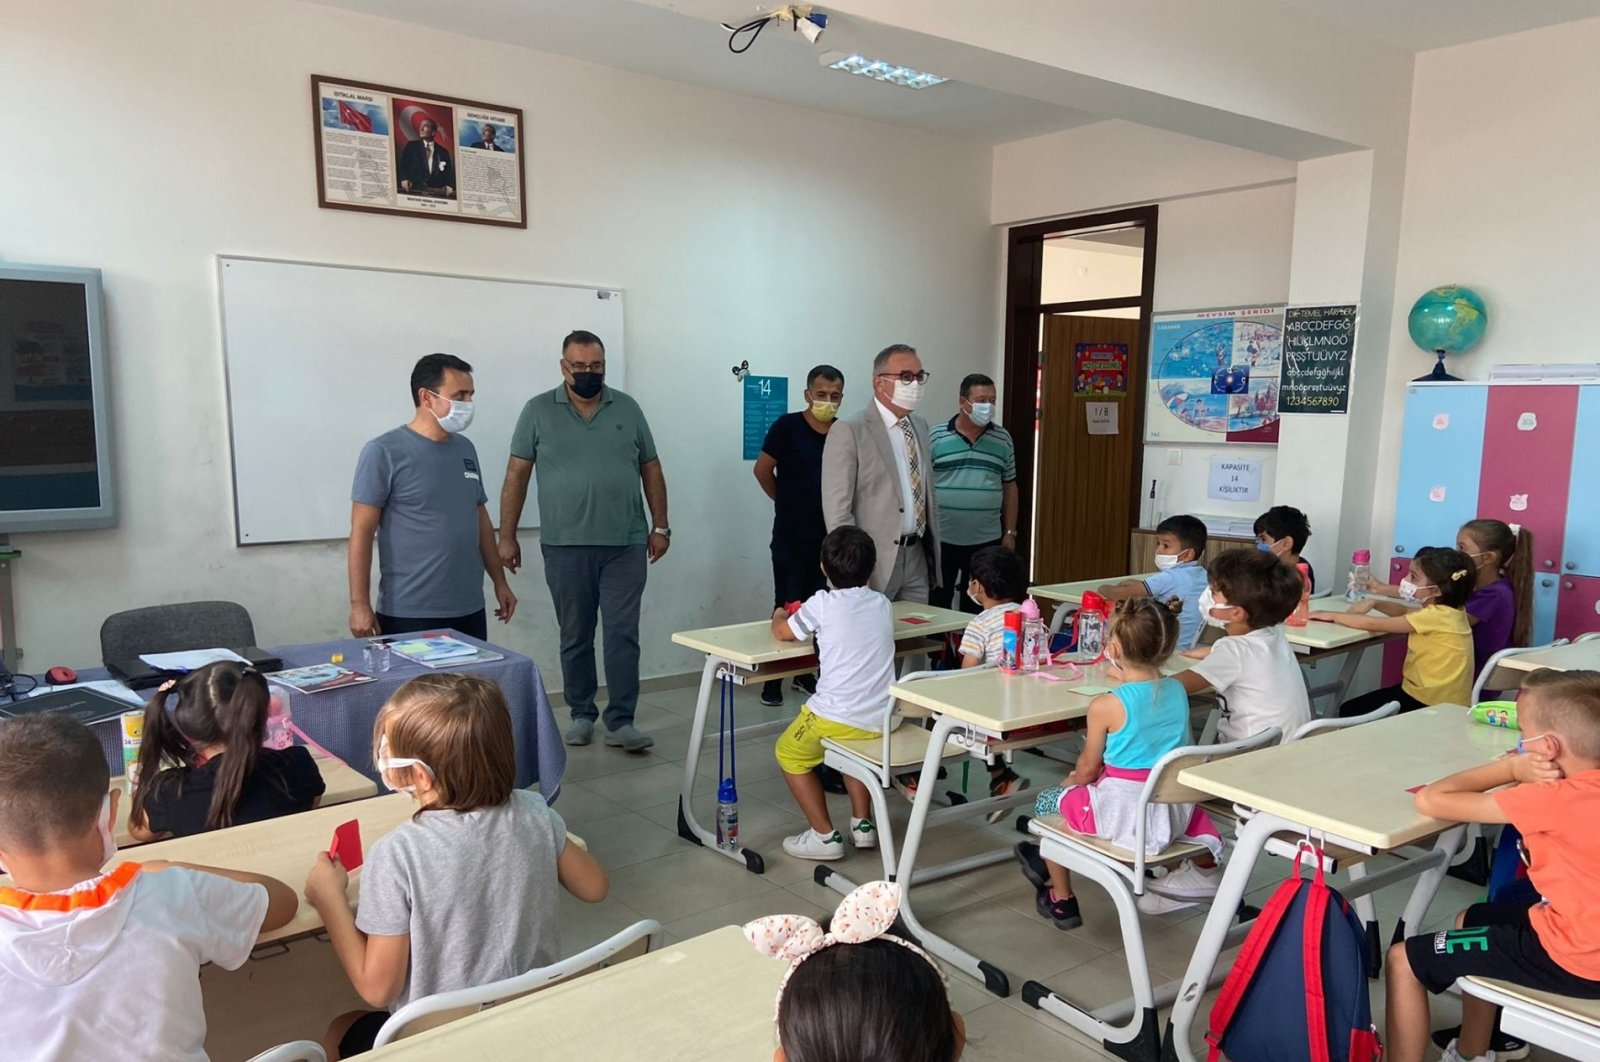 Turkish education authorities visit a classroom in northwestern Bilecik province for inspection of COVID-19 precautions on Sept. 4, 2021. (IHA Photo)